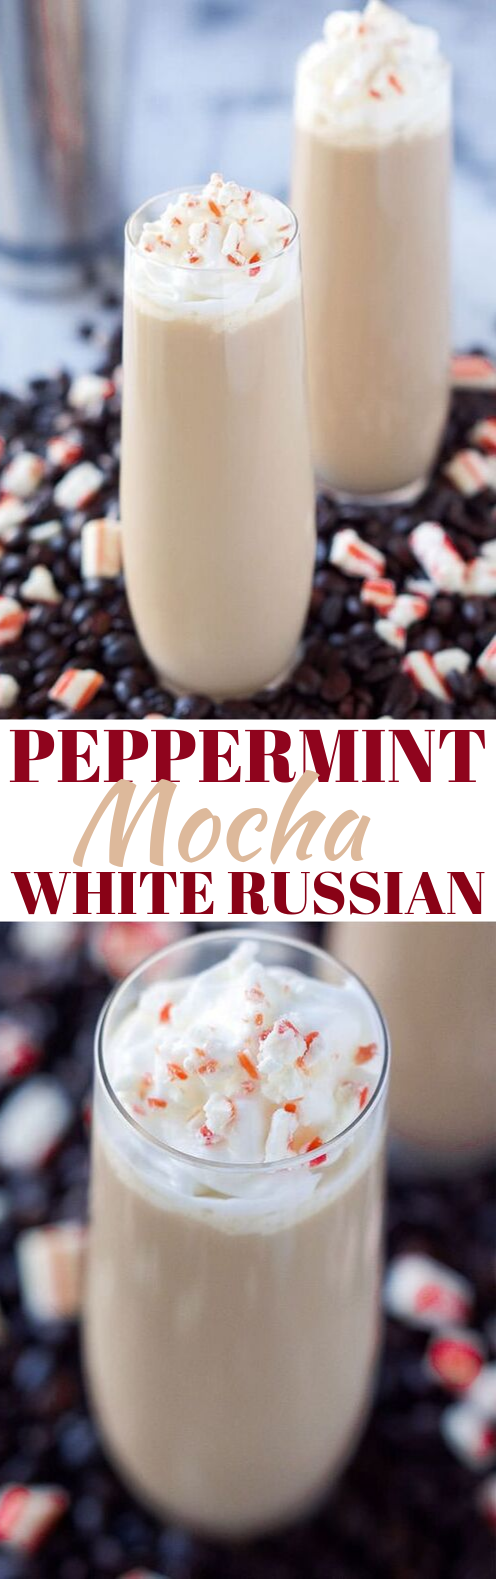 Peppermint Mocha White Russian #drinks #alcohol